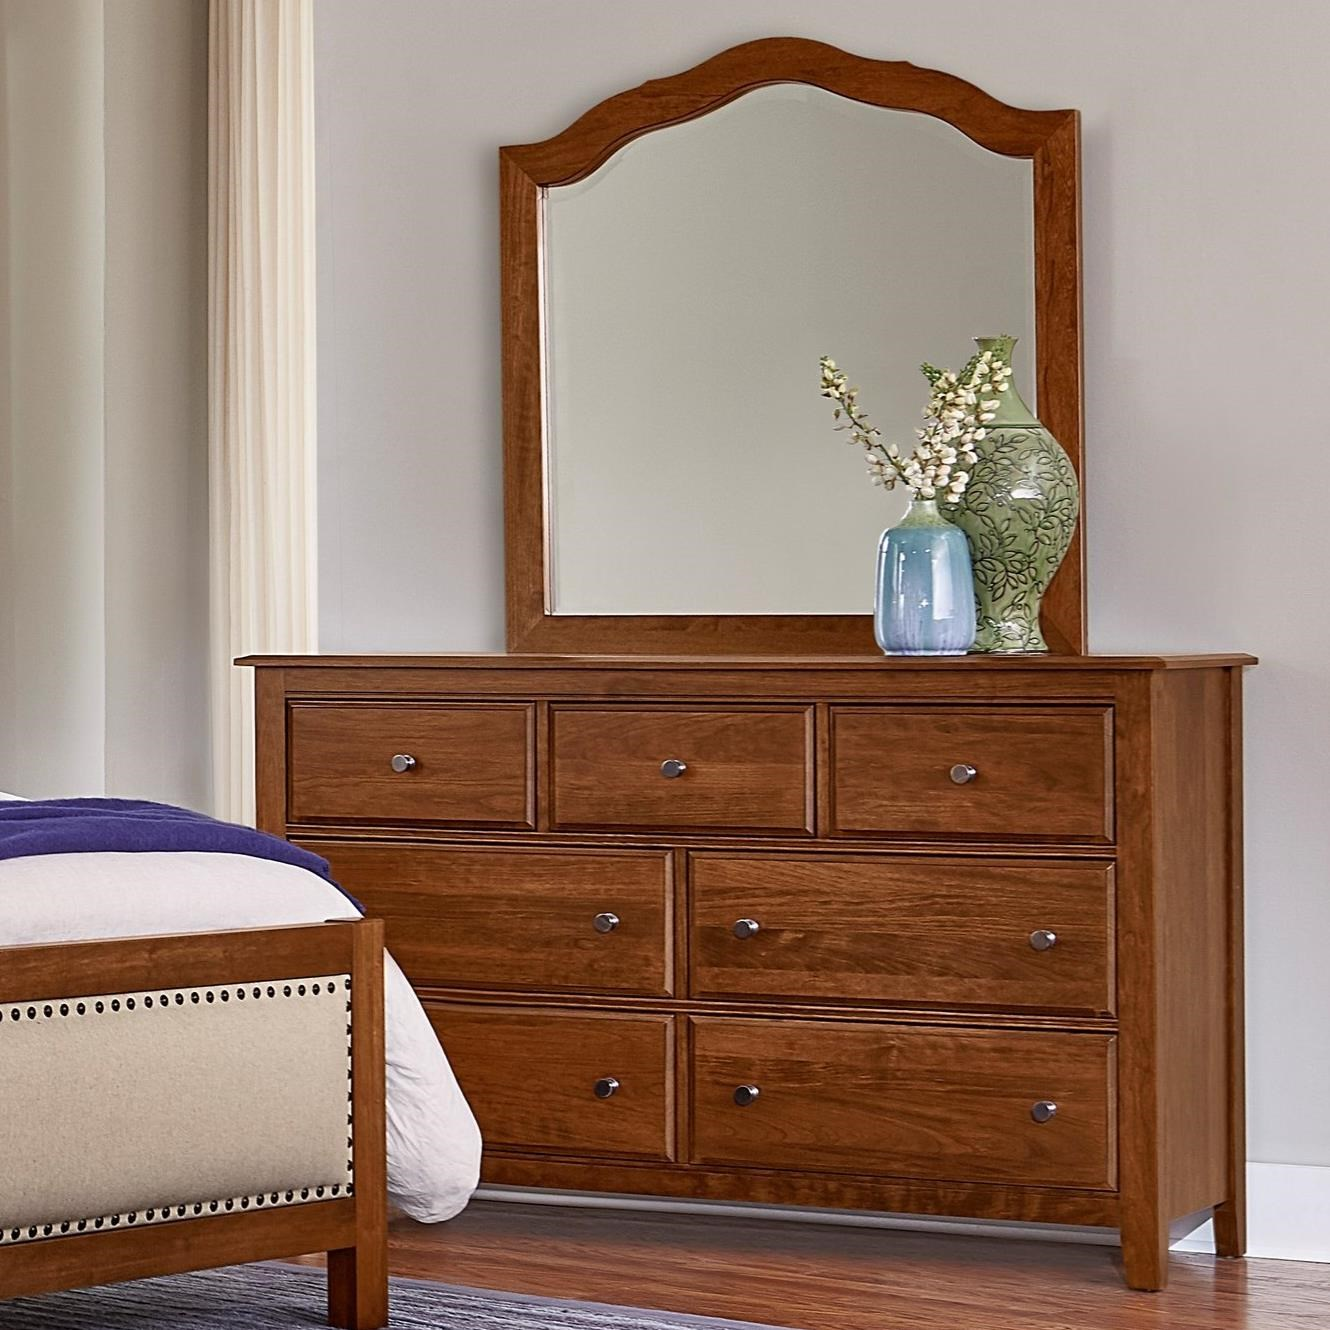 Artisan Choices Loft Triple Dresser & Tall Arched Mirror by Artisan & Post at Johnny Janosik